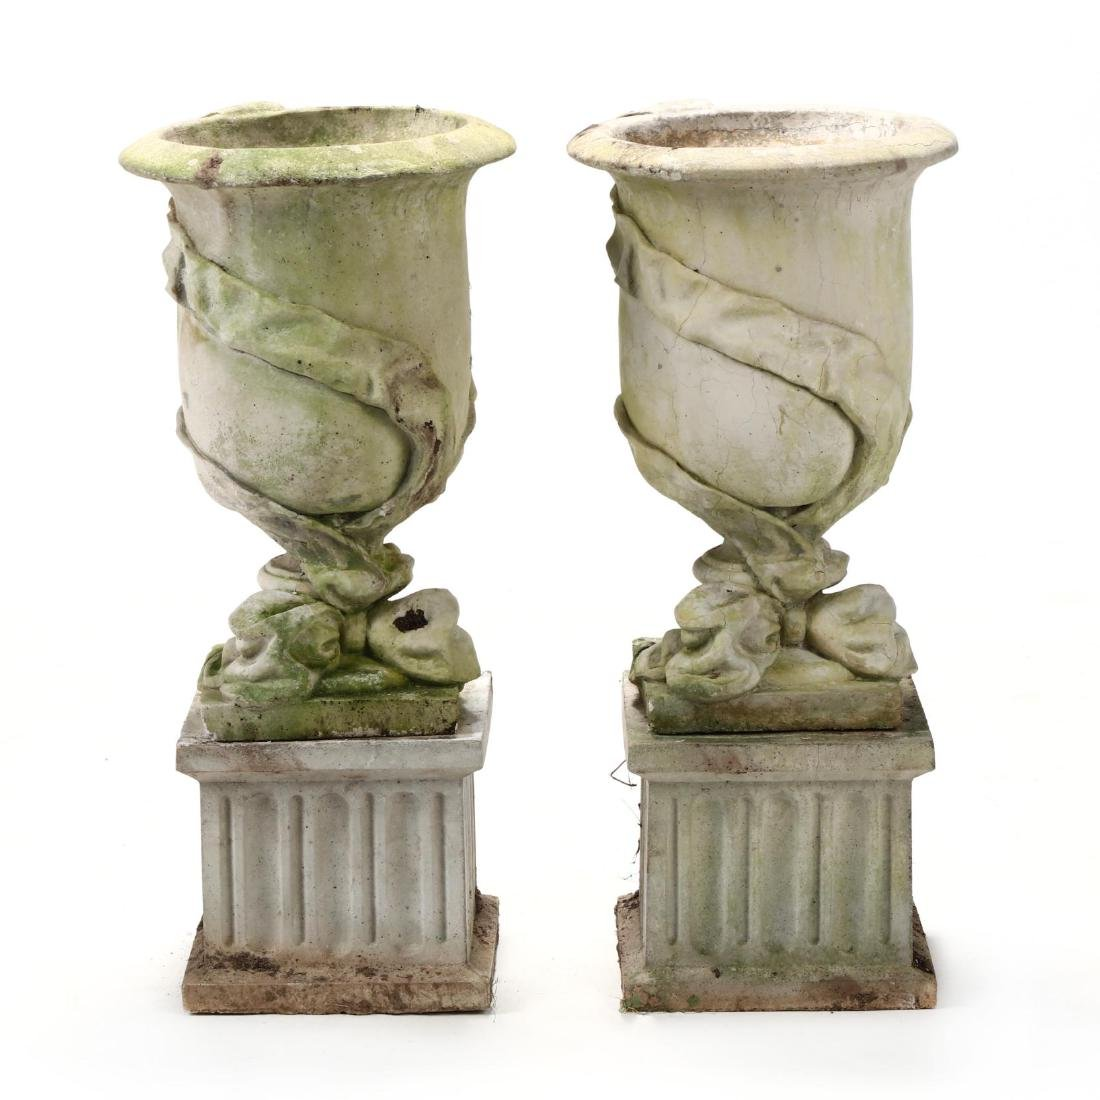 Pair of Cast Stone Classical Garden Urns on Stands